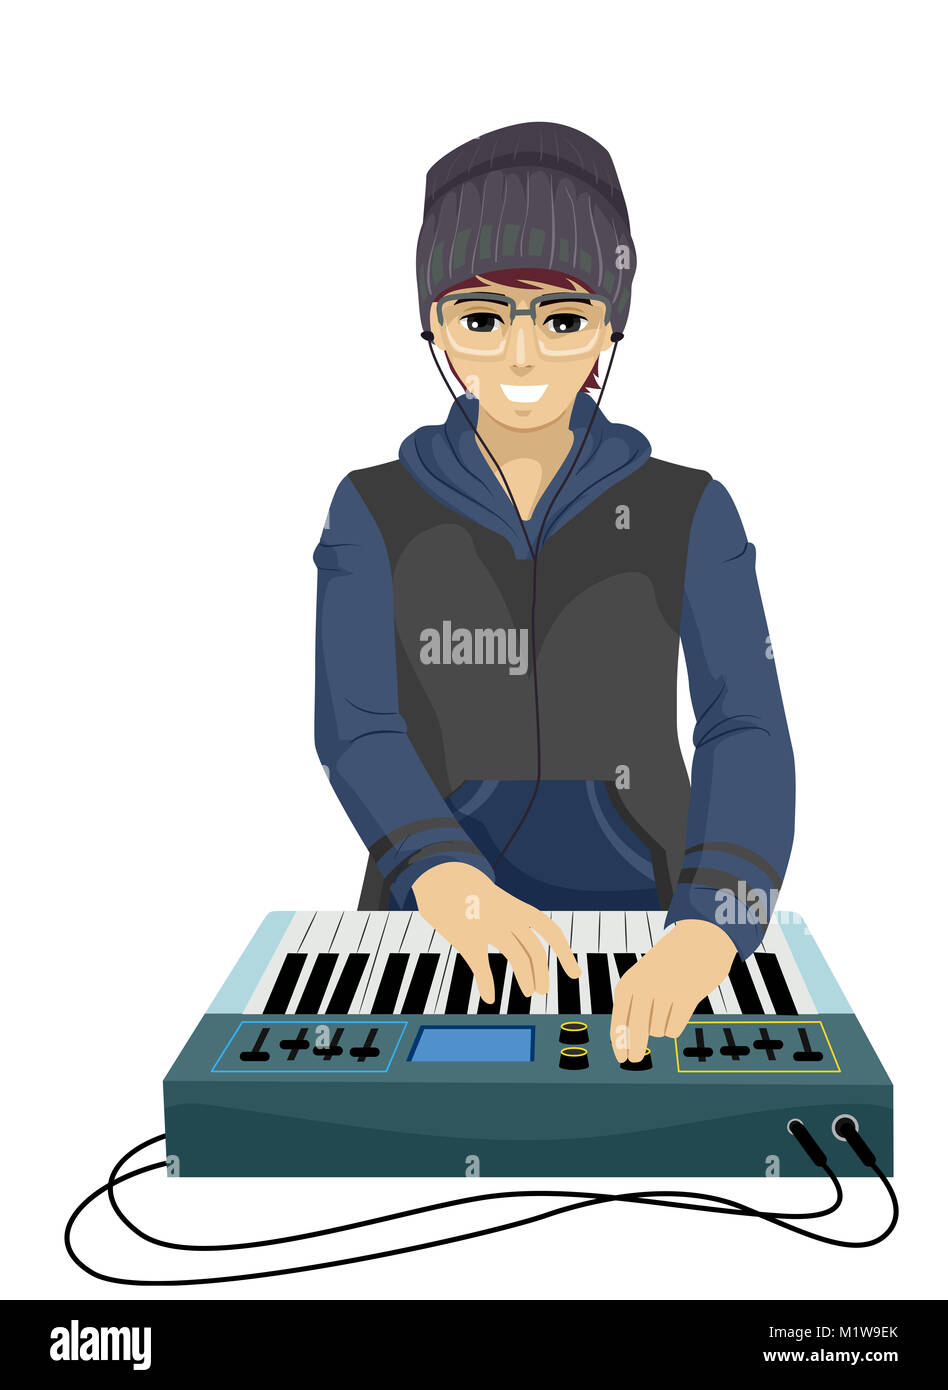 Illustration Featuring a Young Teenage Guy Playing With a Music Synthesizer - Stock Image